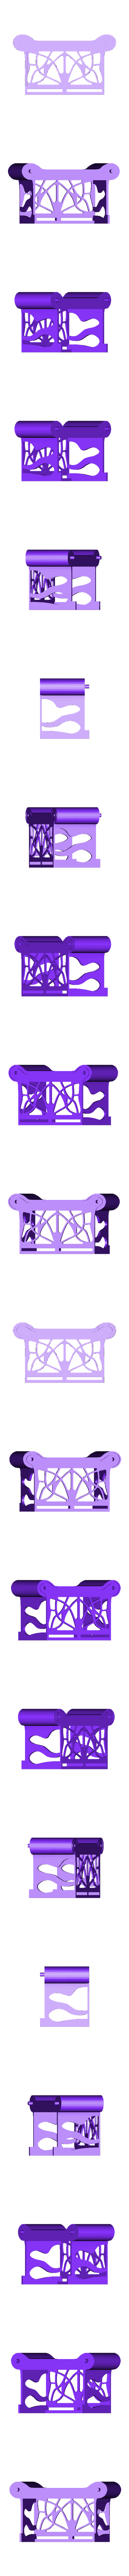 balcony2.stl Download free STL file Cereal box, Art Nouveau house • 3D printer template, Steedrick